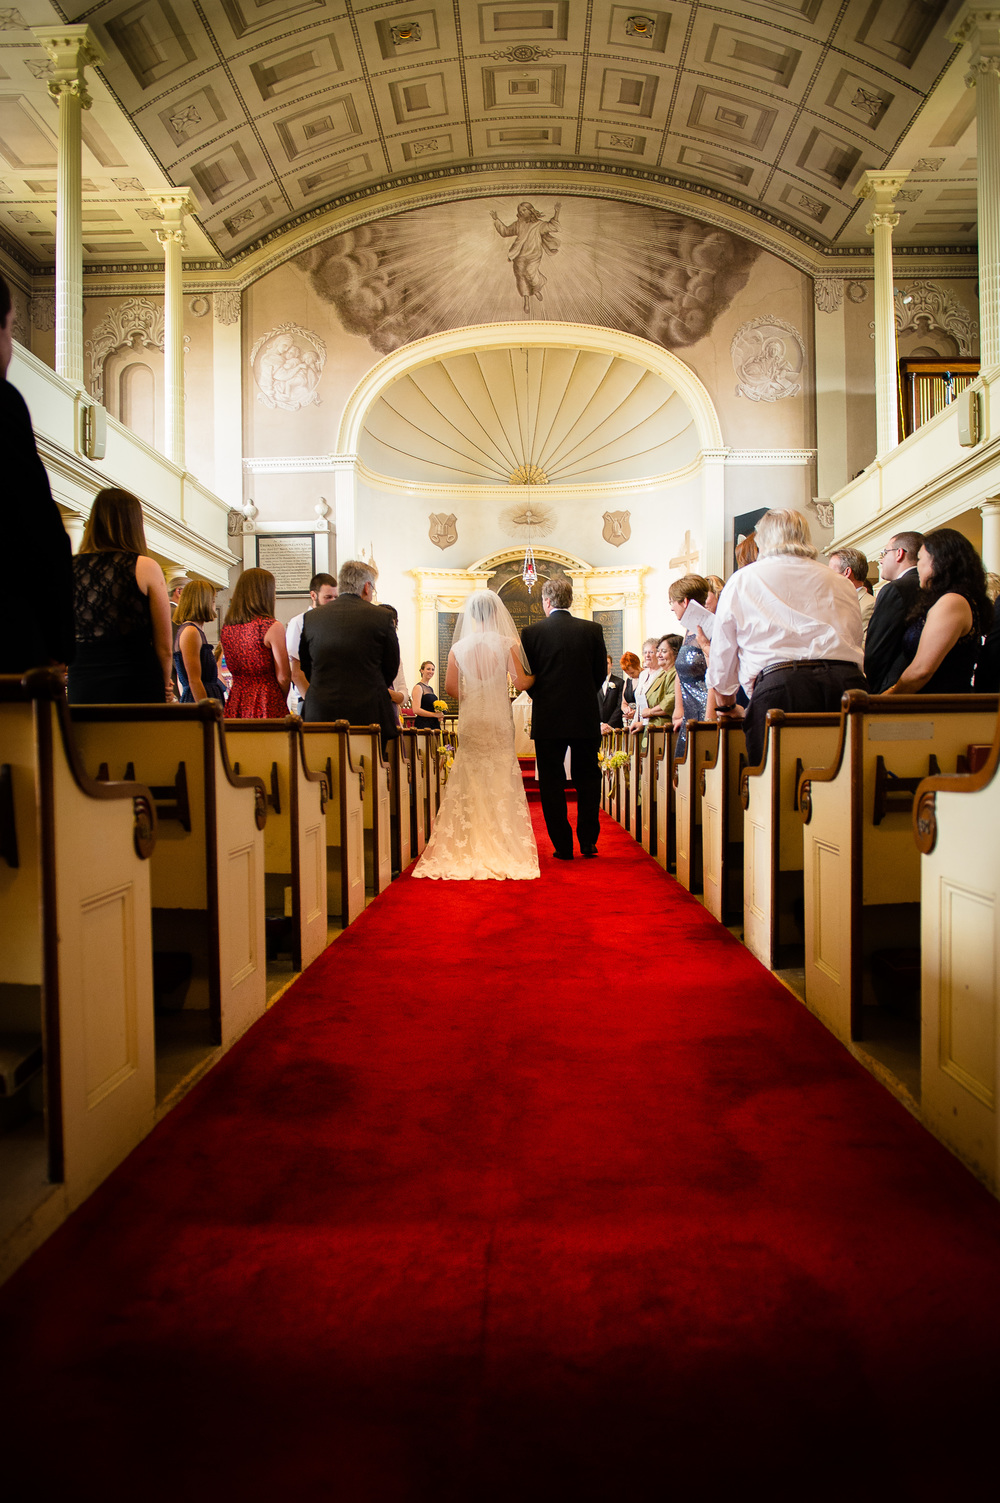 FPO Church wedding.jpg